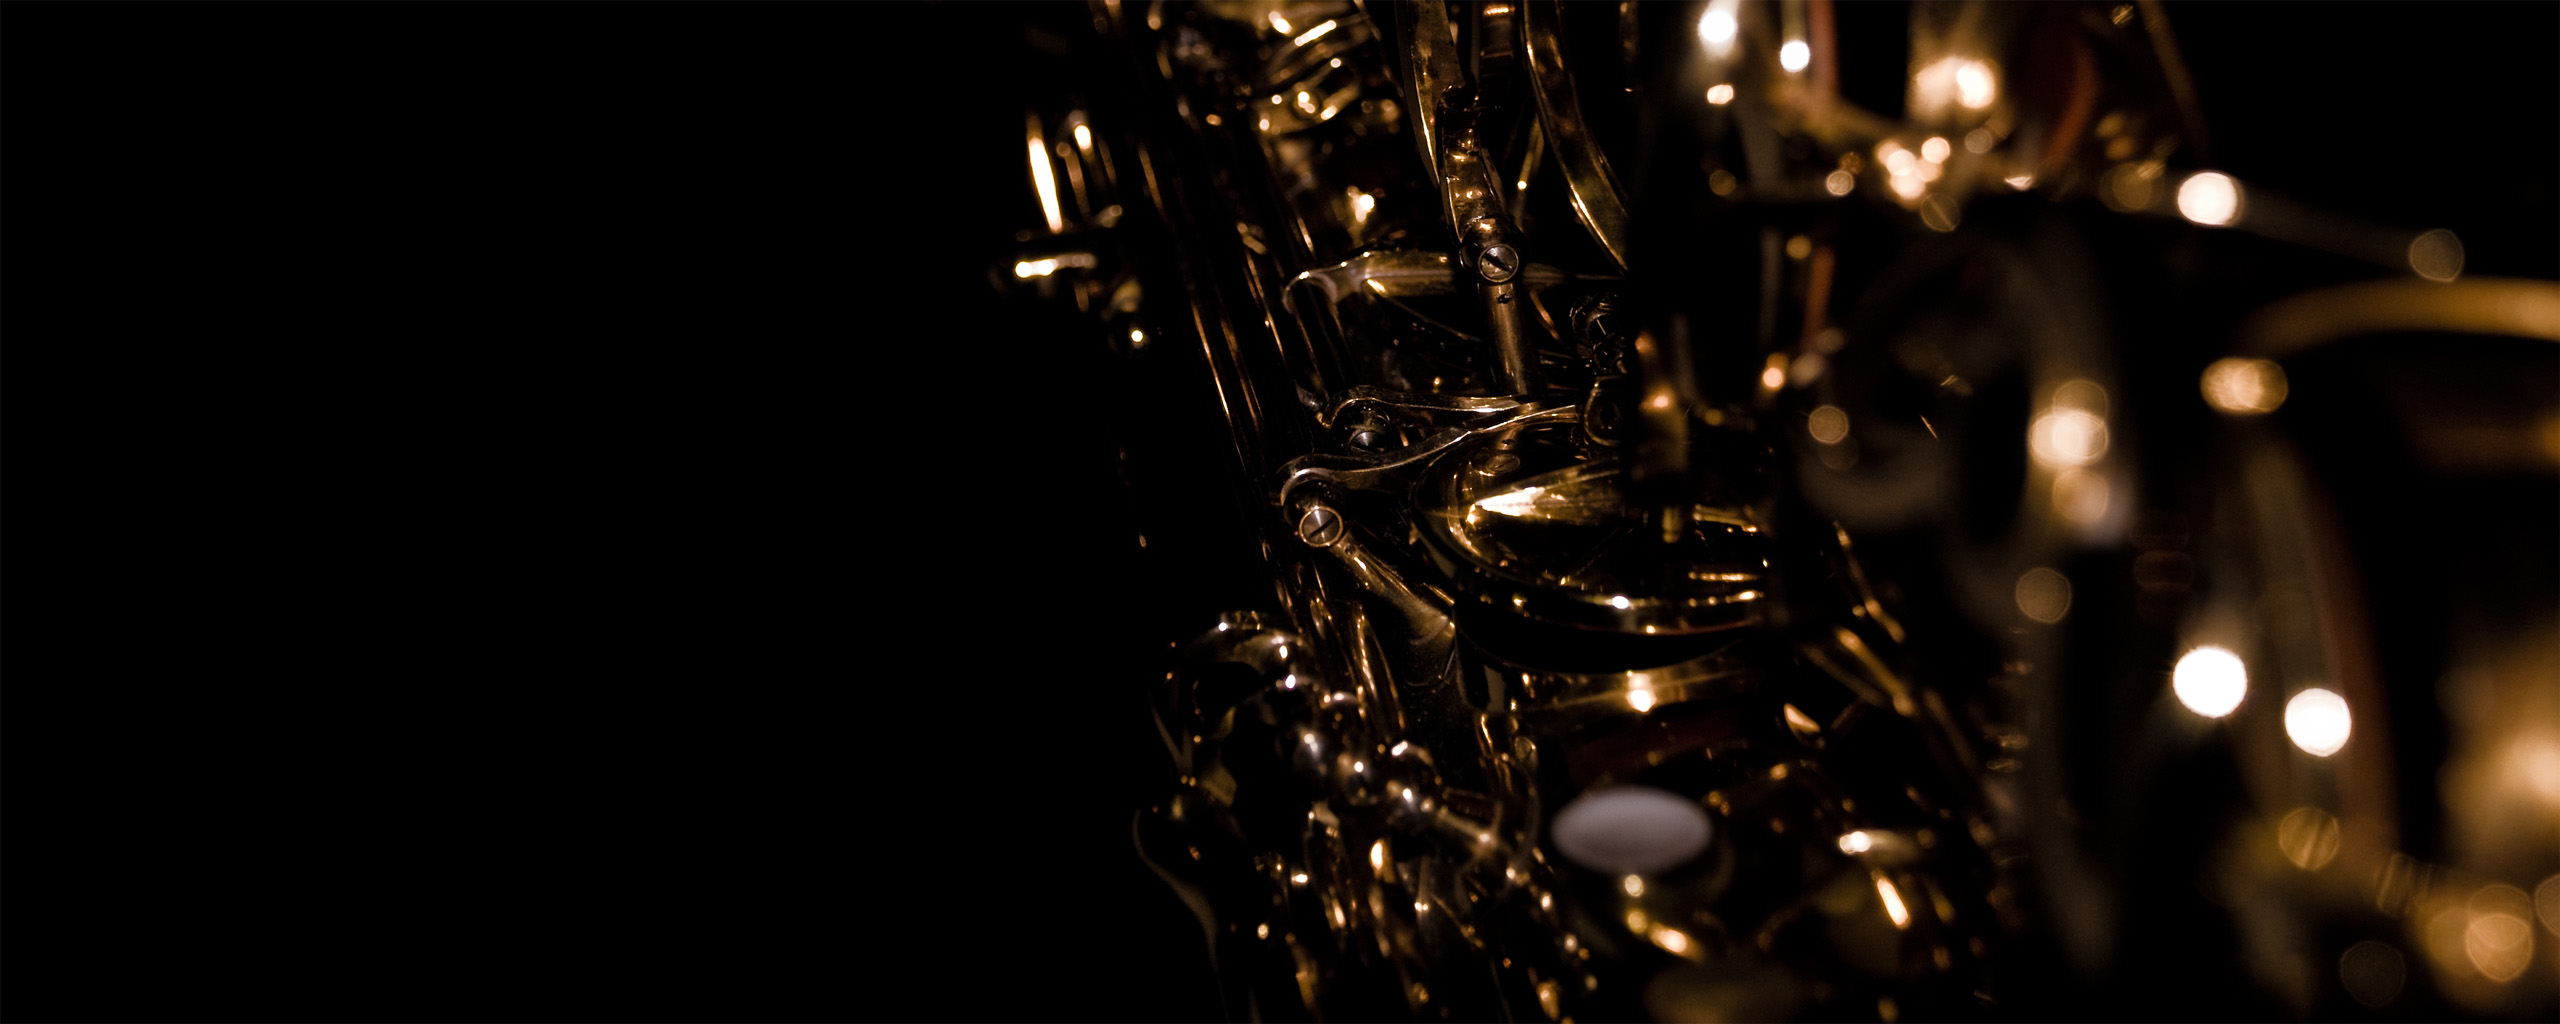 Saxophone Wallpaper 2560x1024